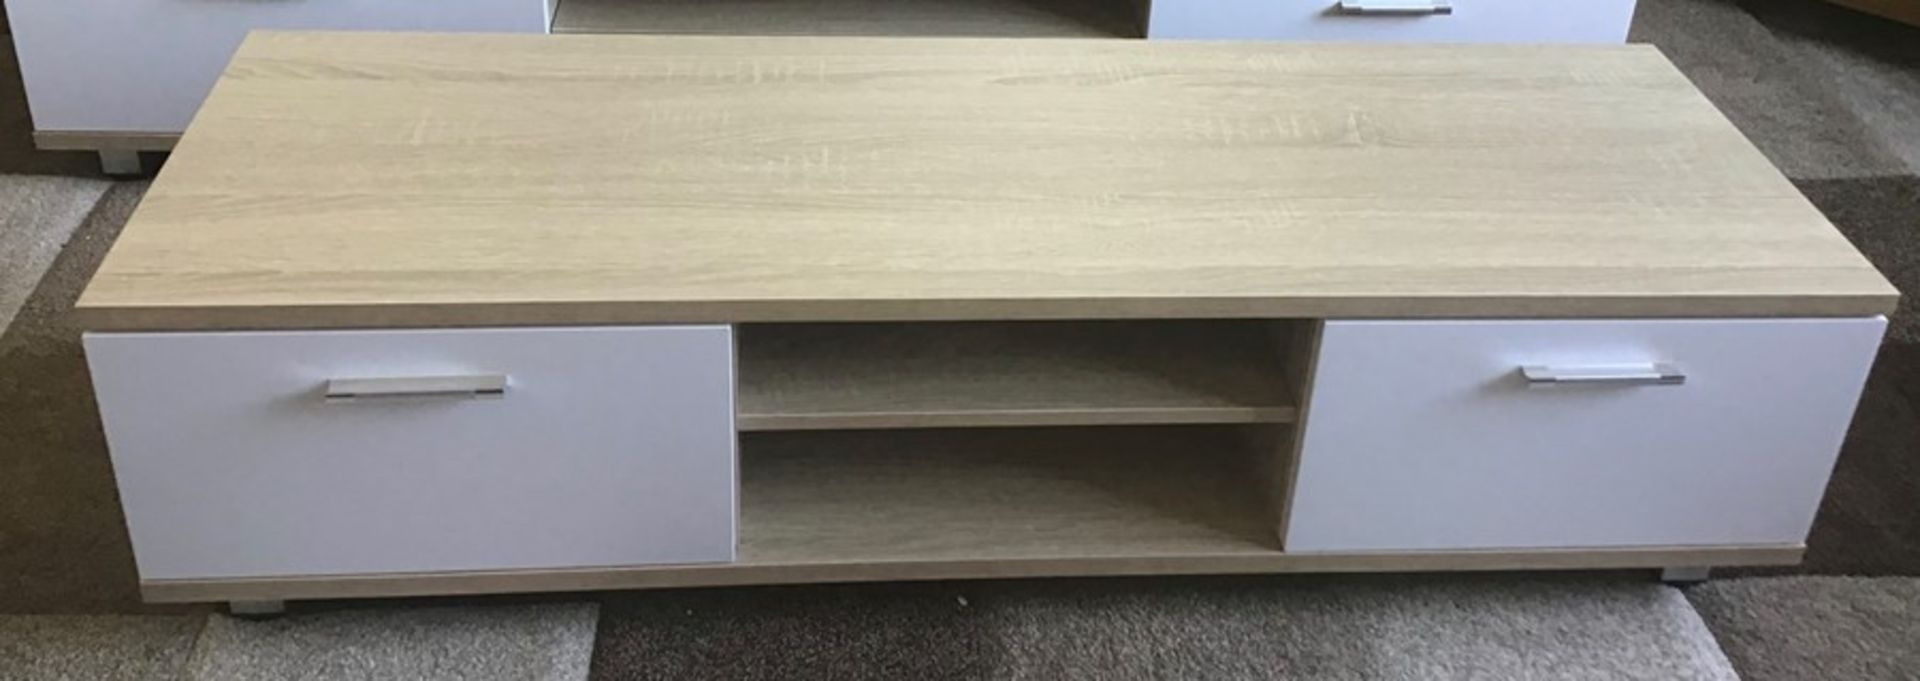 Oak and white 128cm TV stand, brand new, flat packed and boxed. RRP Circa £100.00 |3x Boxes - Image 3 of 3